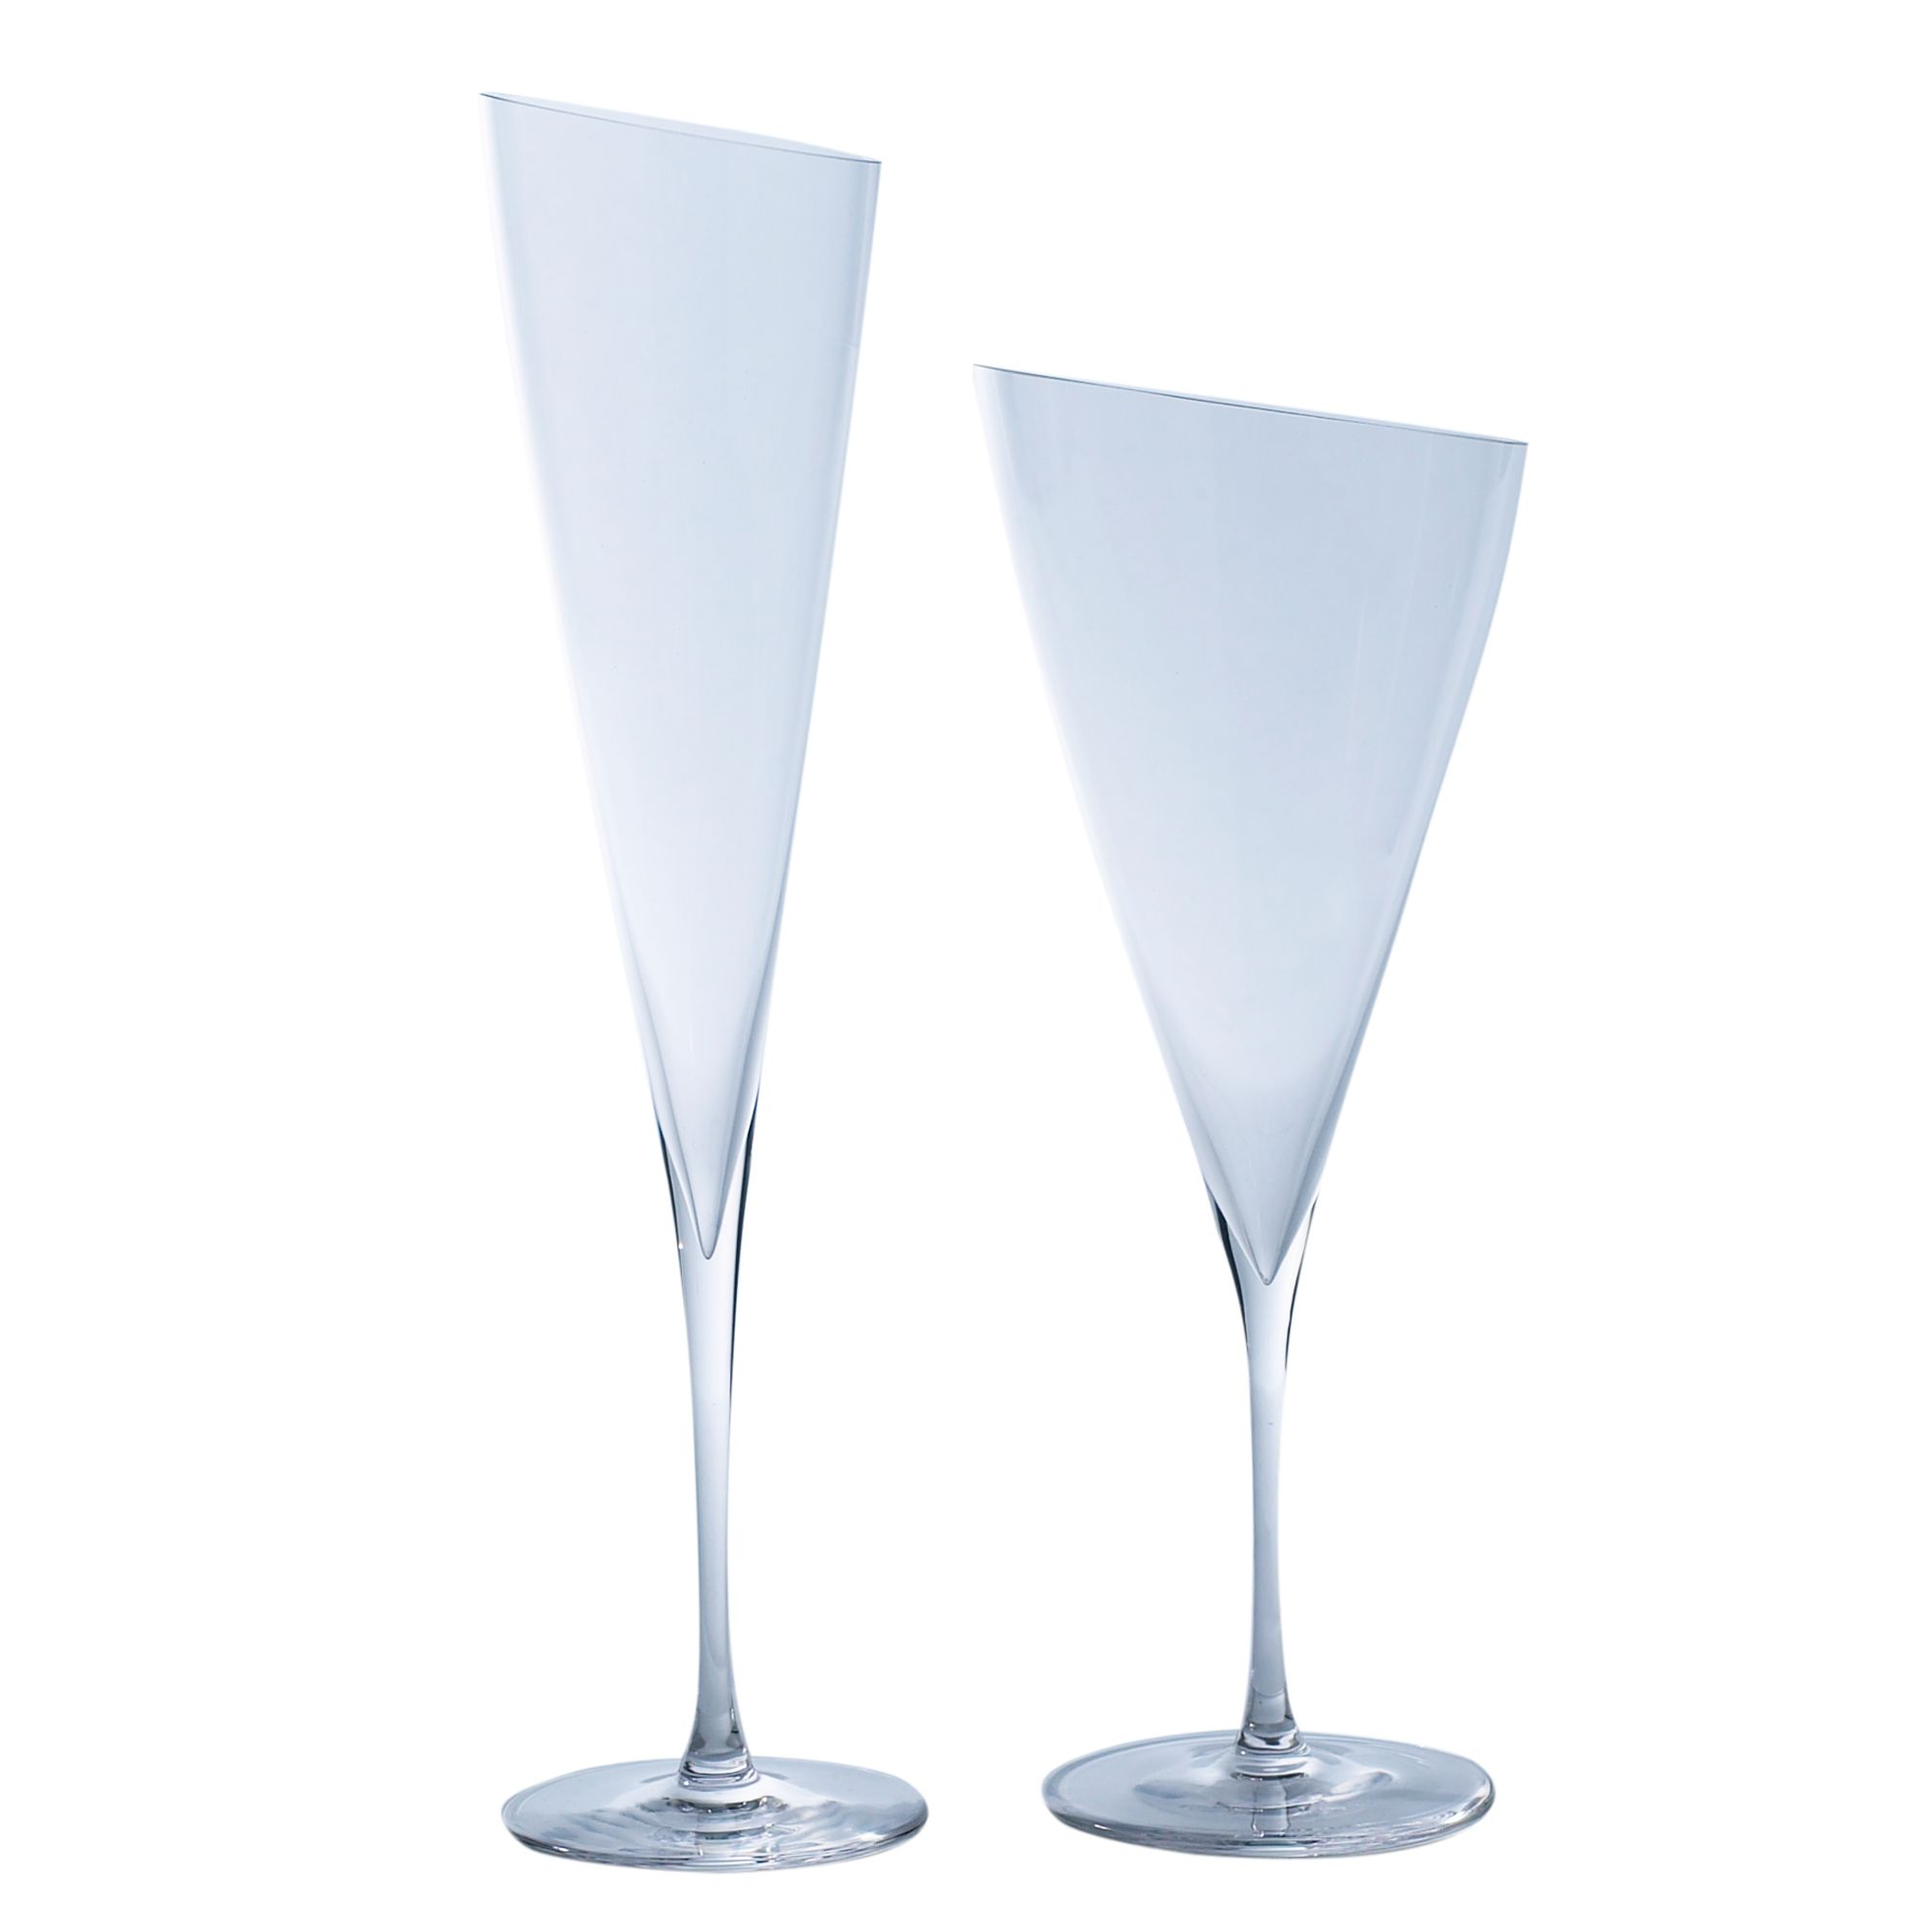 Linea Angle cut red wine glass